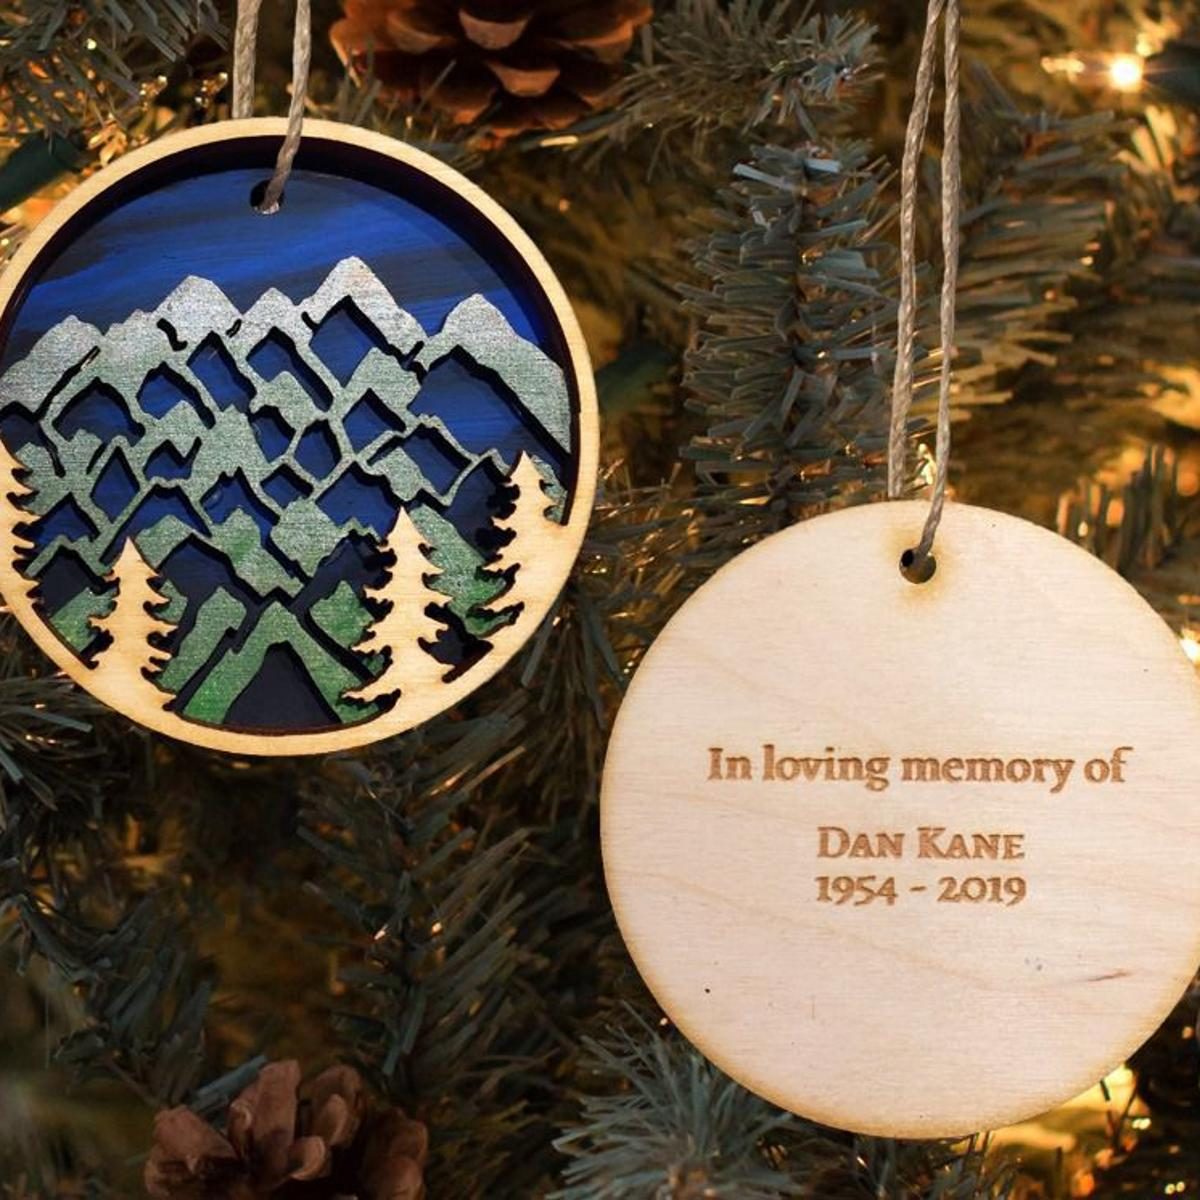 BLOG Christmas ornaments for Dan Kane